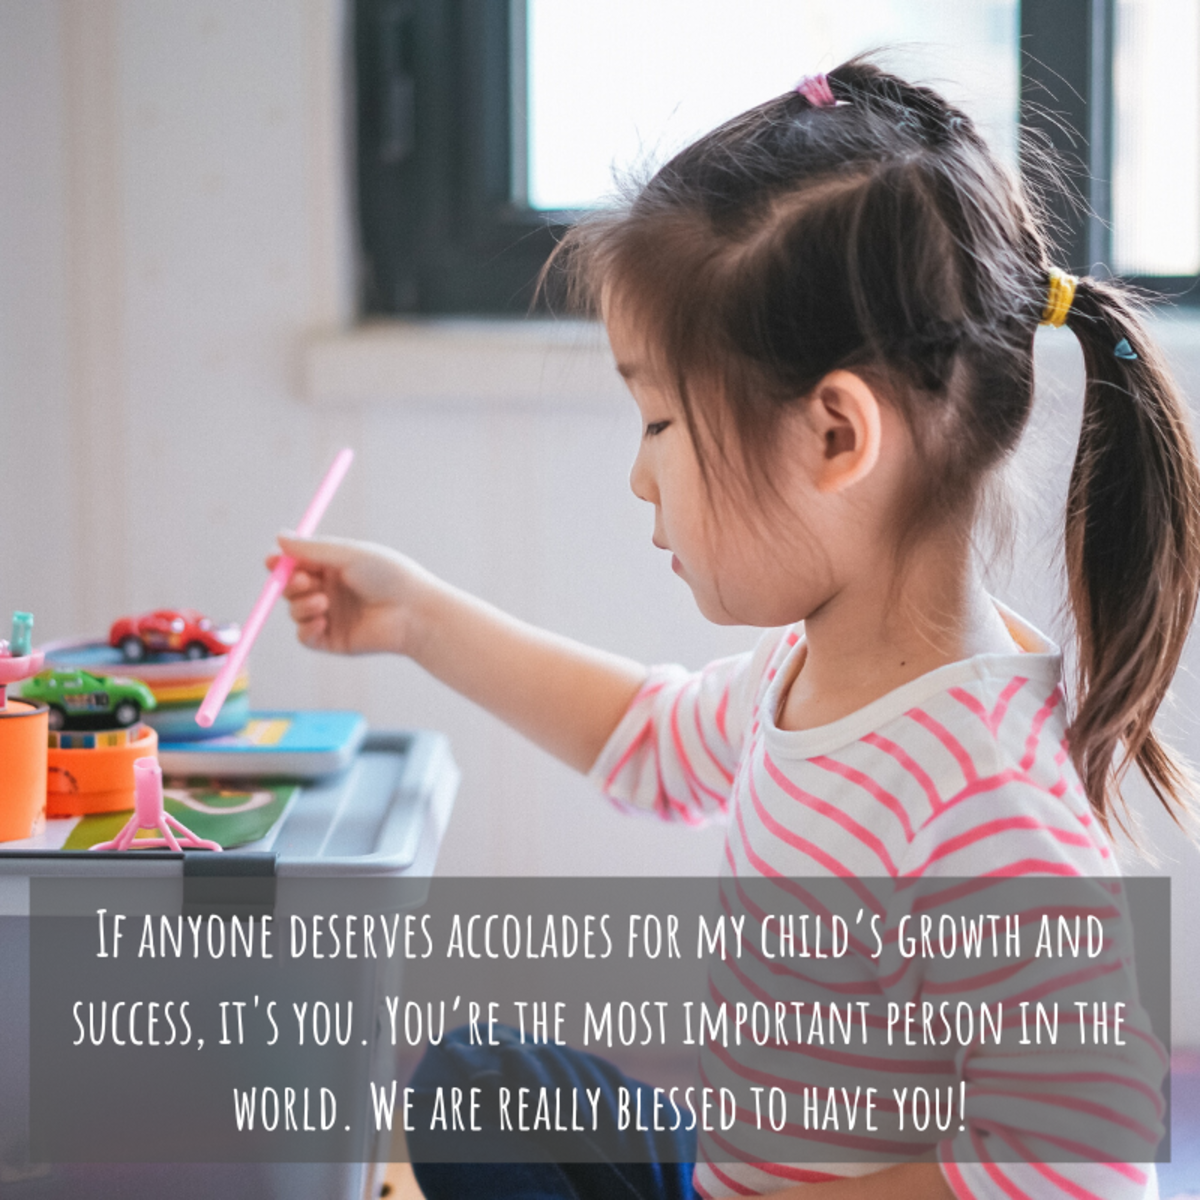 Those who educate young children are doing some of the most important work there is. Let them know how important they are!